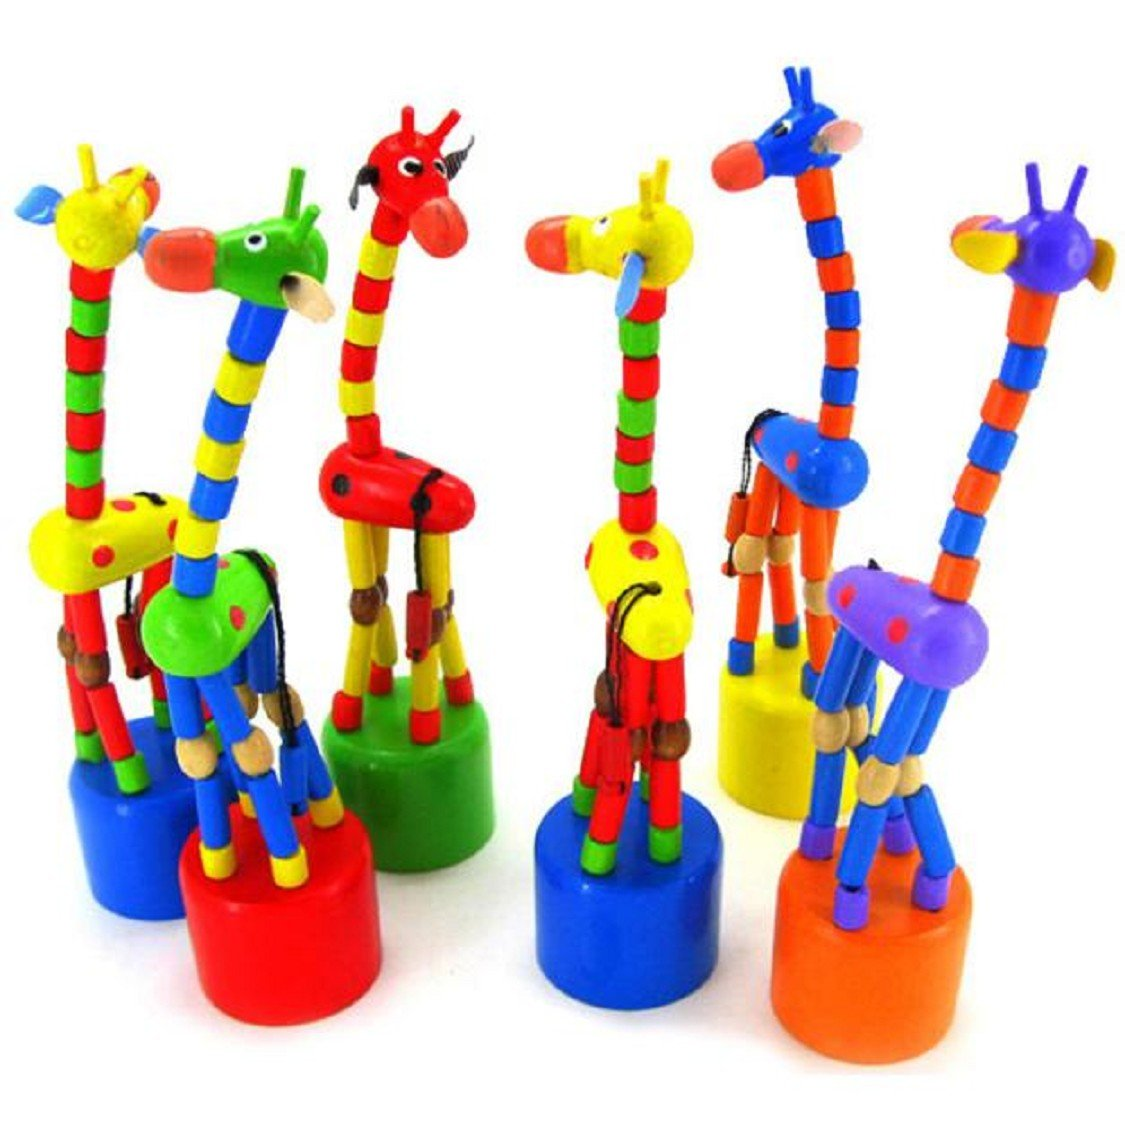 Naladoo 2018 Kids Intelligence Toy Dancing Stand Colorful Rocking Giraffe Wooden Toy Indoor Ornaments IU32566436436